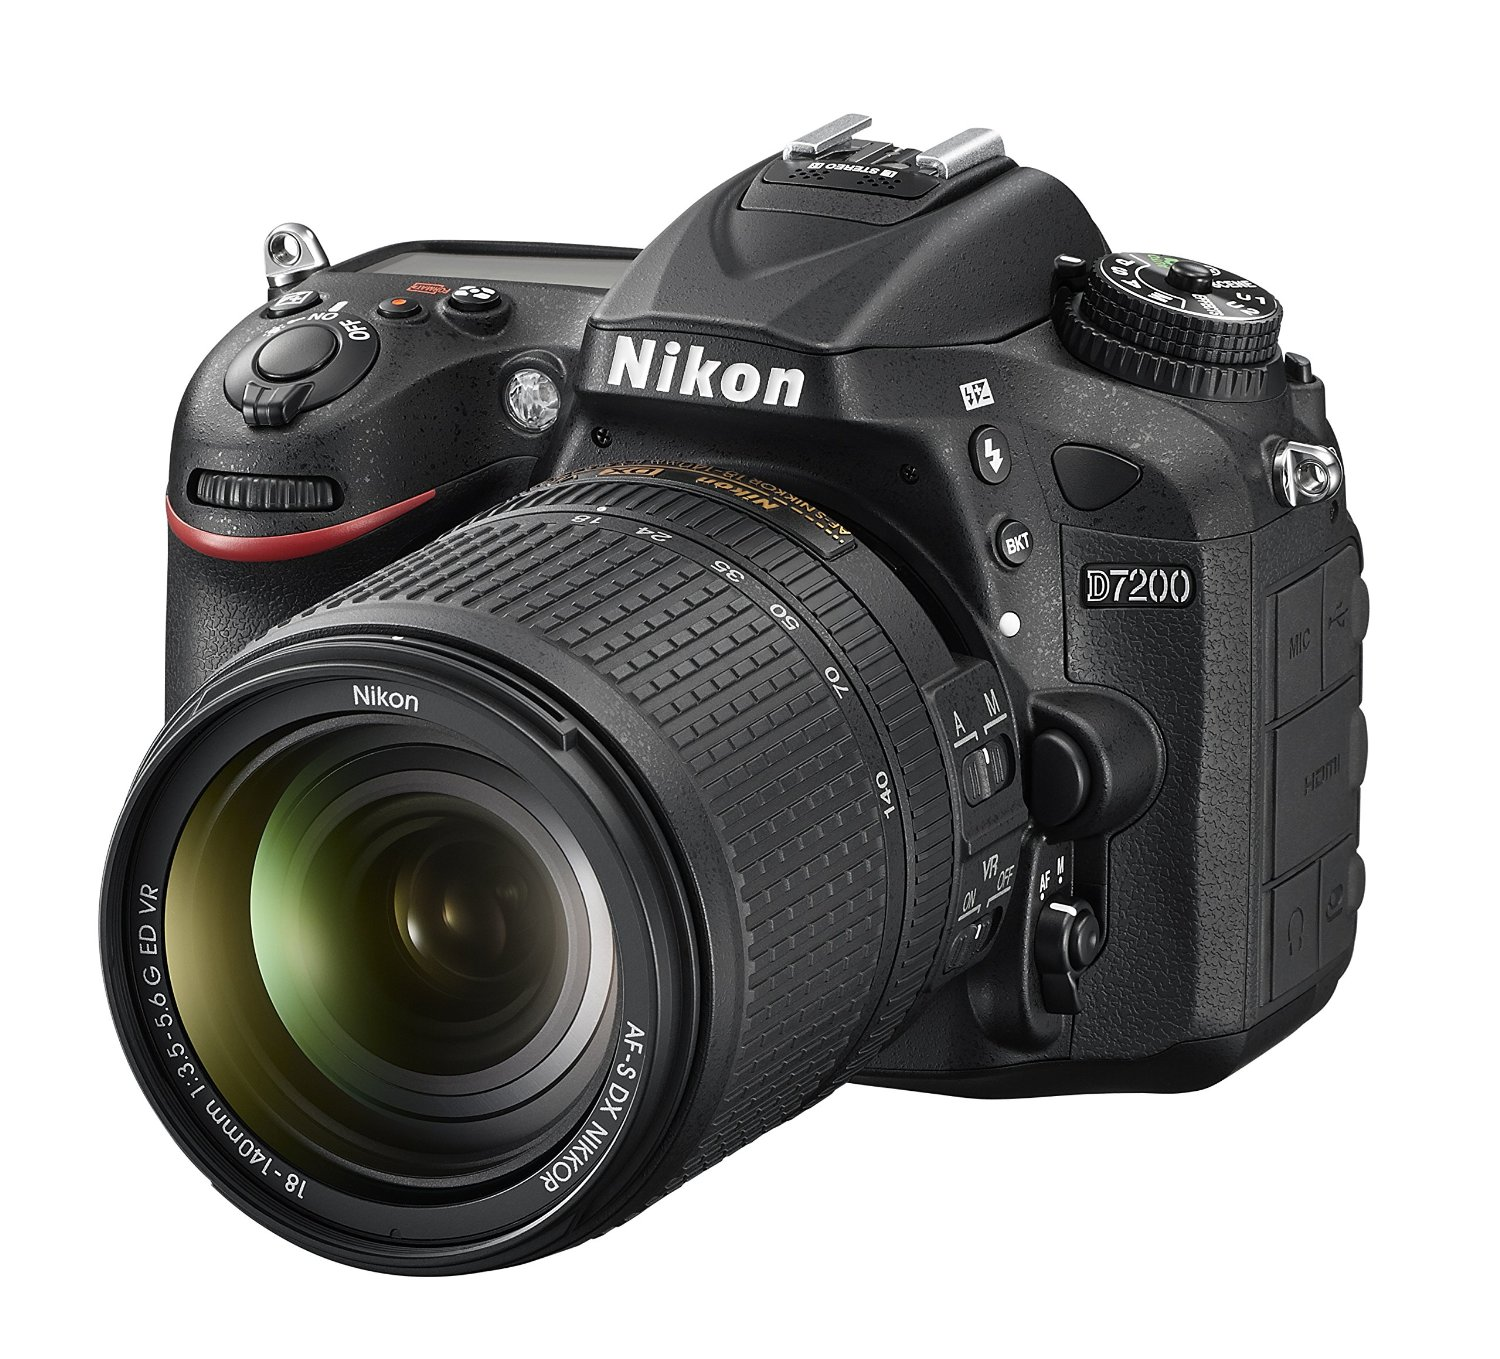 Nikon D7200 black friday deals